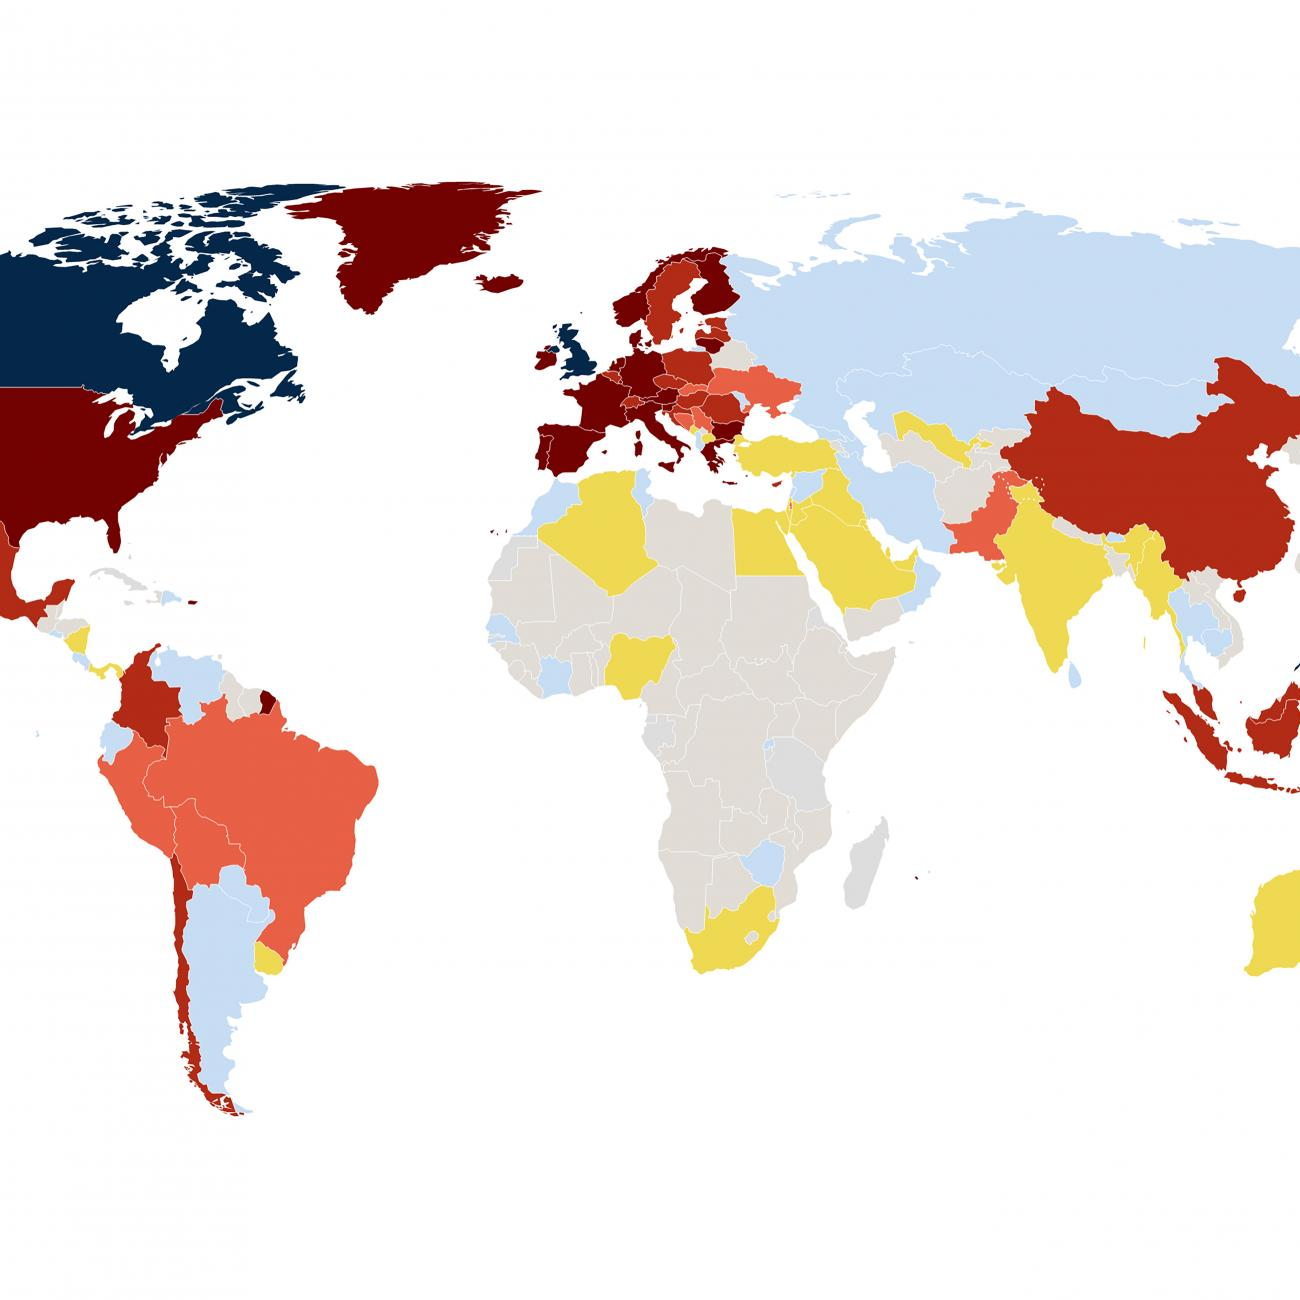 Map of the world shows number of vaccines countries have access to.